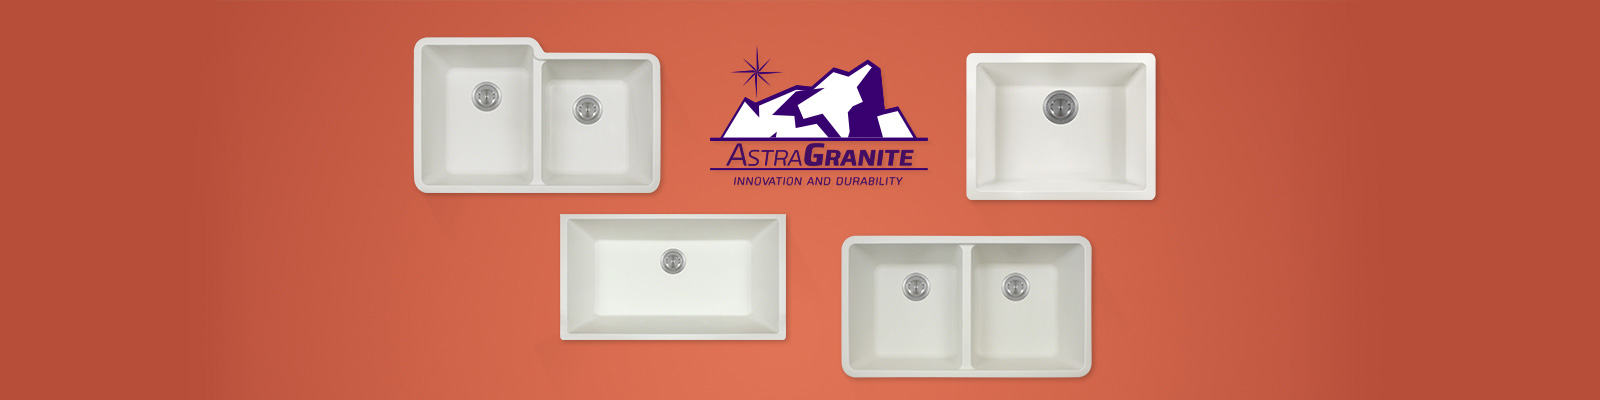 Known As AstraGranite, These Durable, Quiet, And Stain Resistant Sinks Are  Made Of A Granite Composite, And Are A Proud Addition To The Polaris  Portfolio.